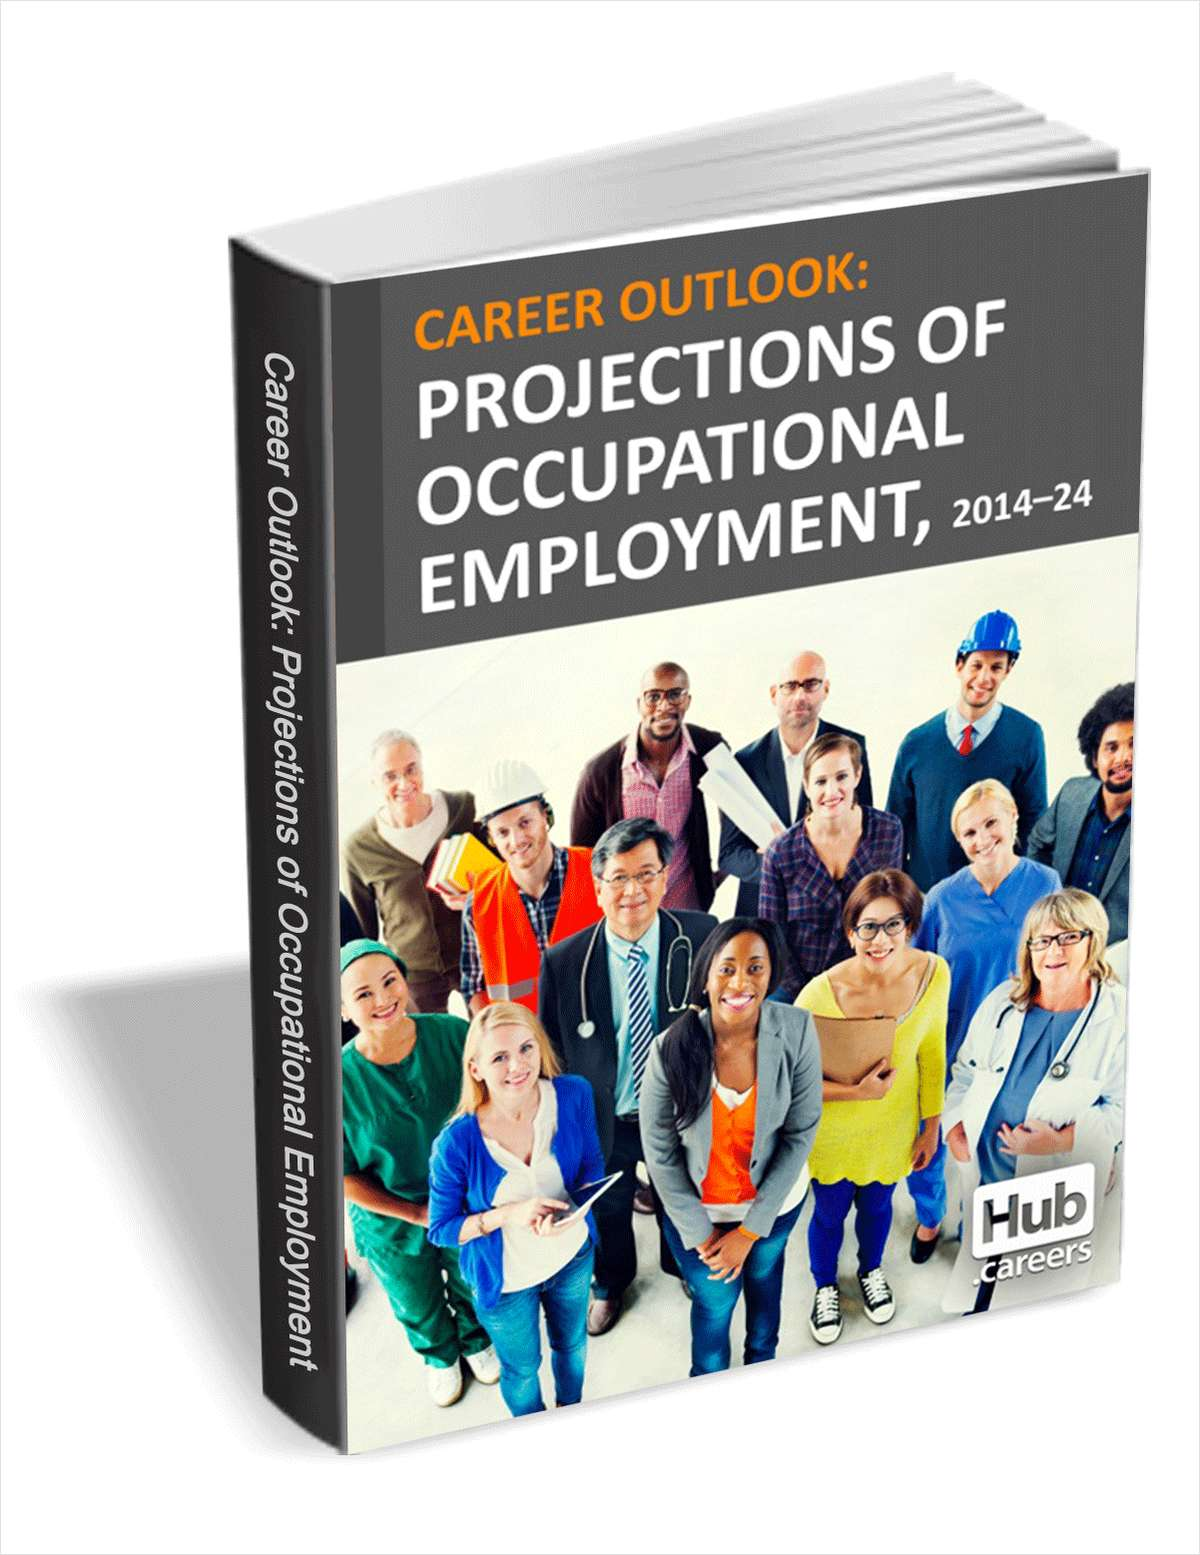 Projections of Occupational Employment, 2014-24 - Career Outlook